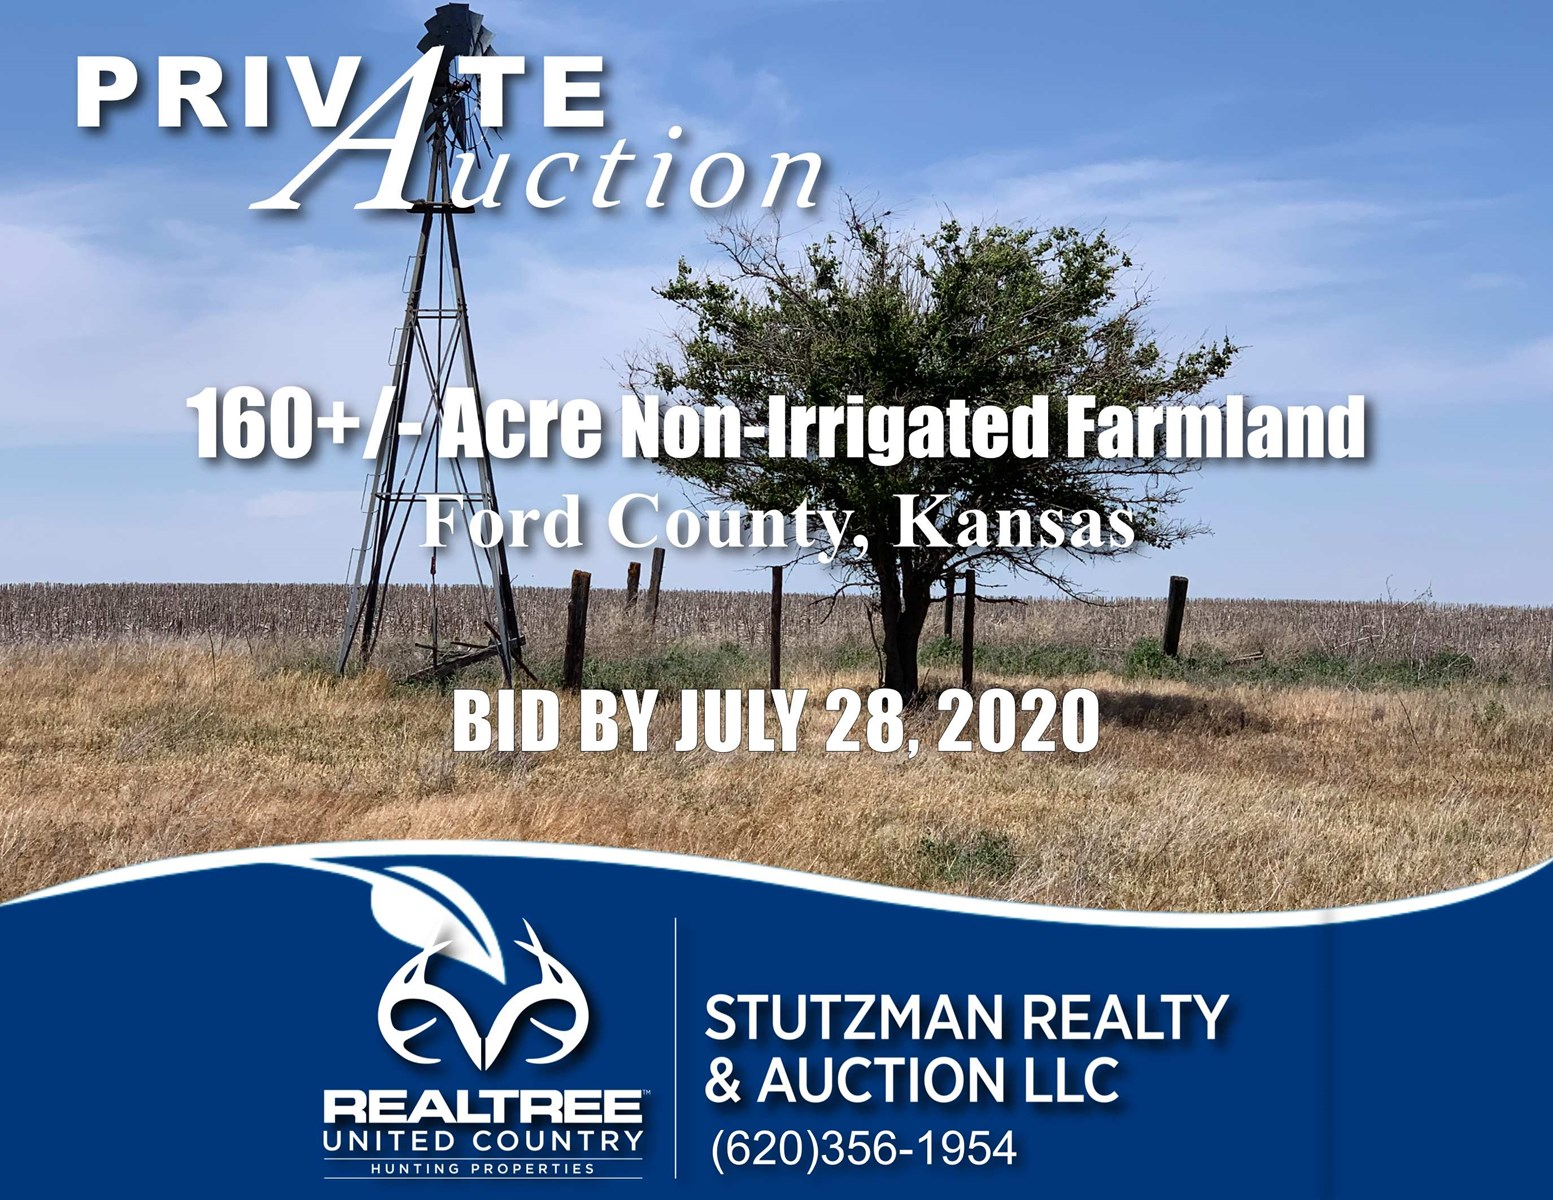 FORD COUNTY, KANSAS ~ 160+/- ACRE FARMLAND ~ PRIVATE AUCTION